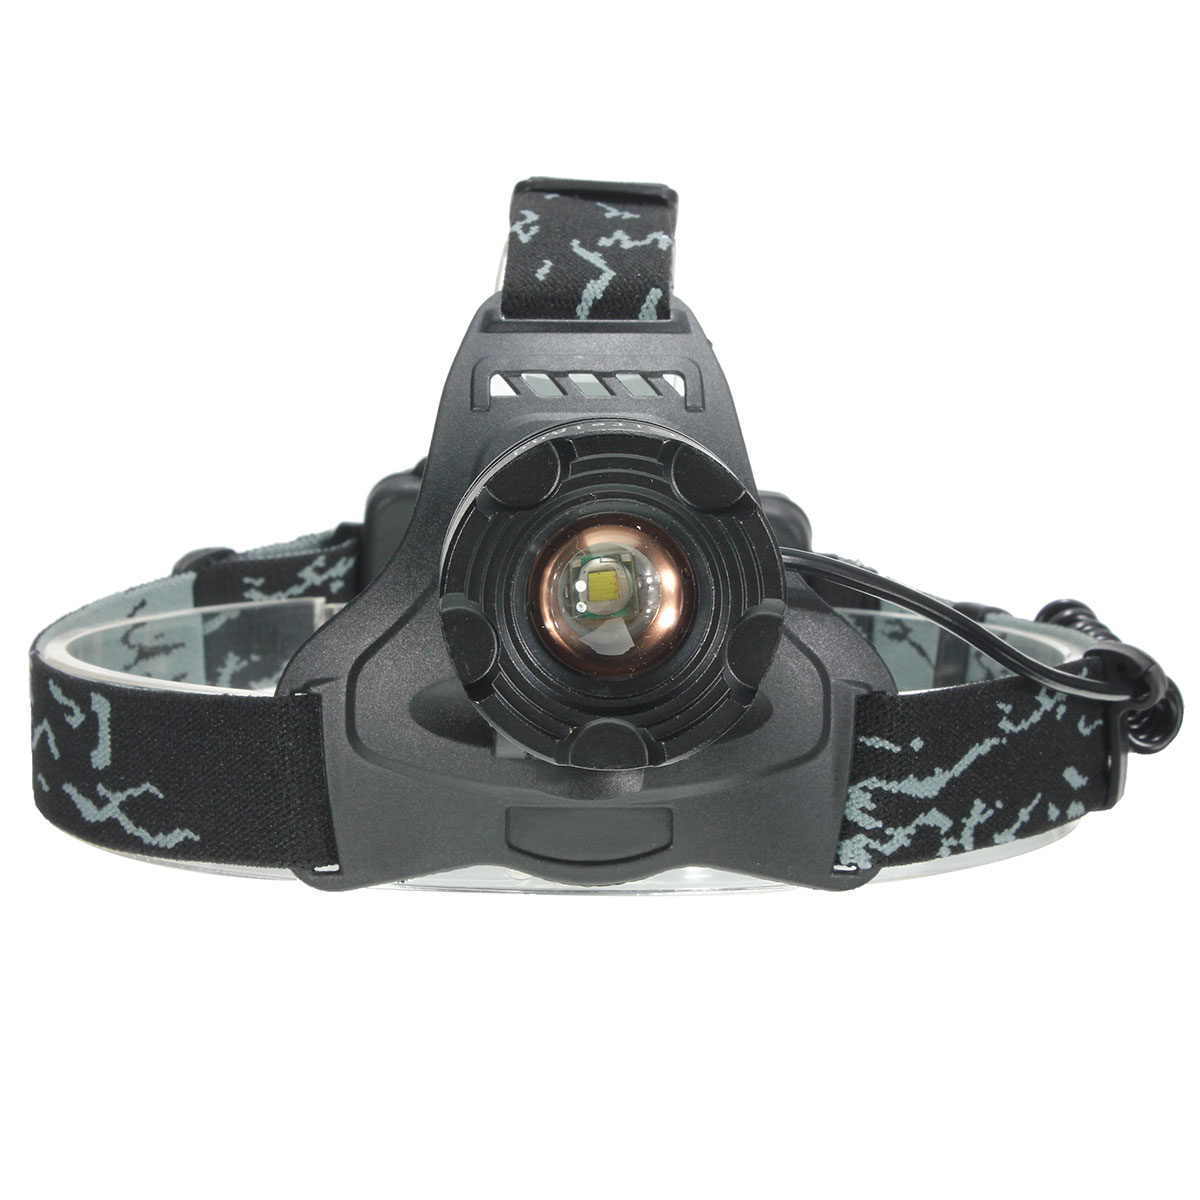 Elfeland 3500 Lumen T6 LED Zoomble tactical headlamp Rechargeable Headlight Headlamp Flashlight Torch Waterproof 3 Modes For Hiking Camping Riding Fishing